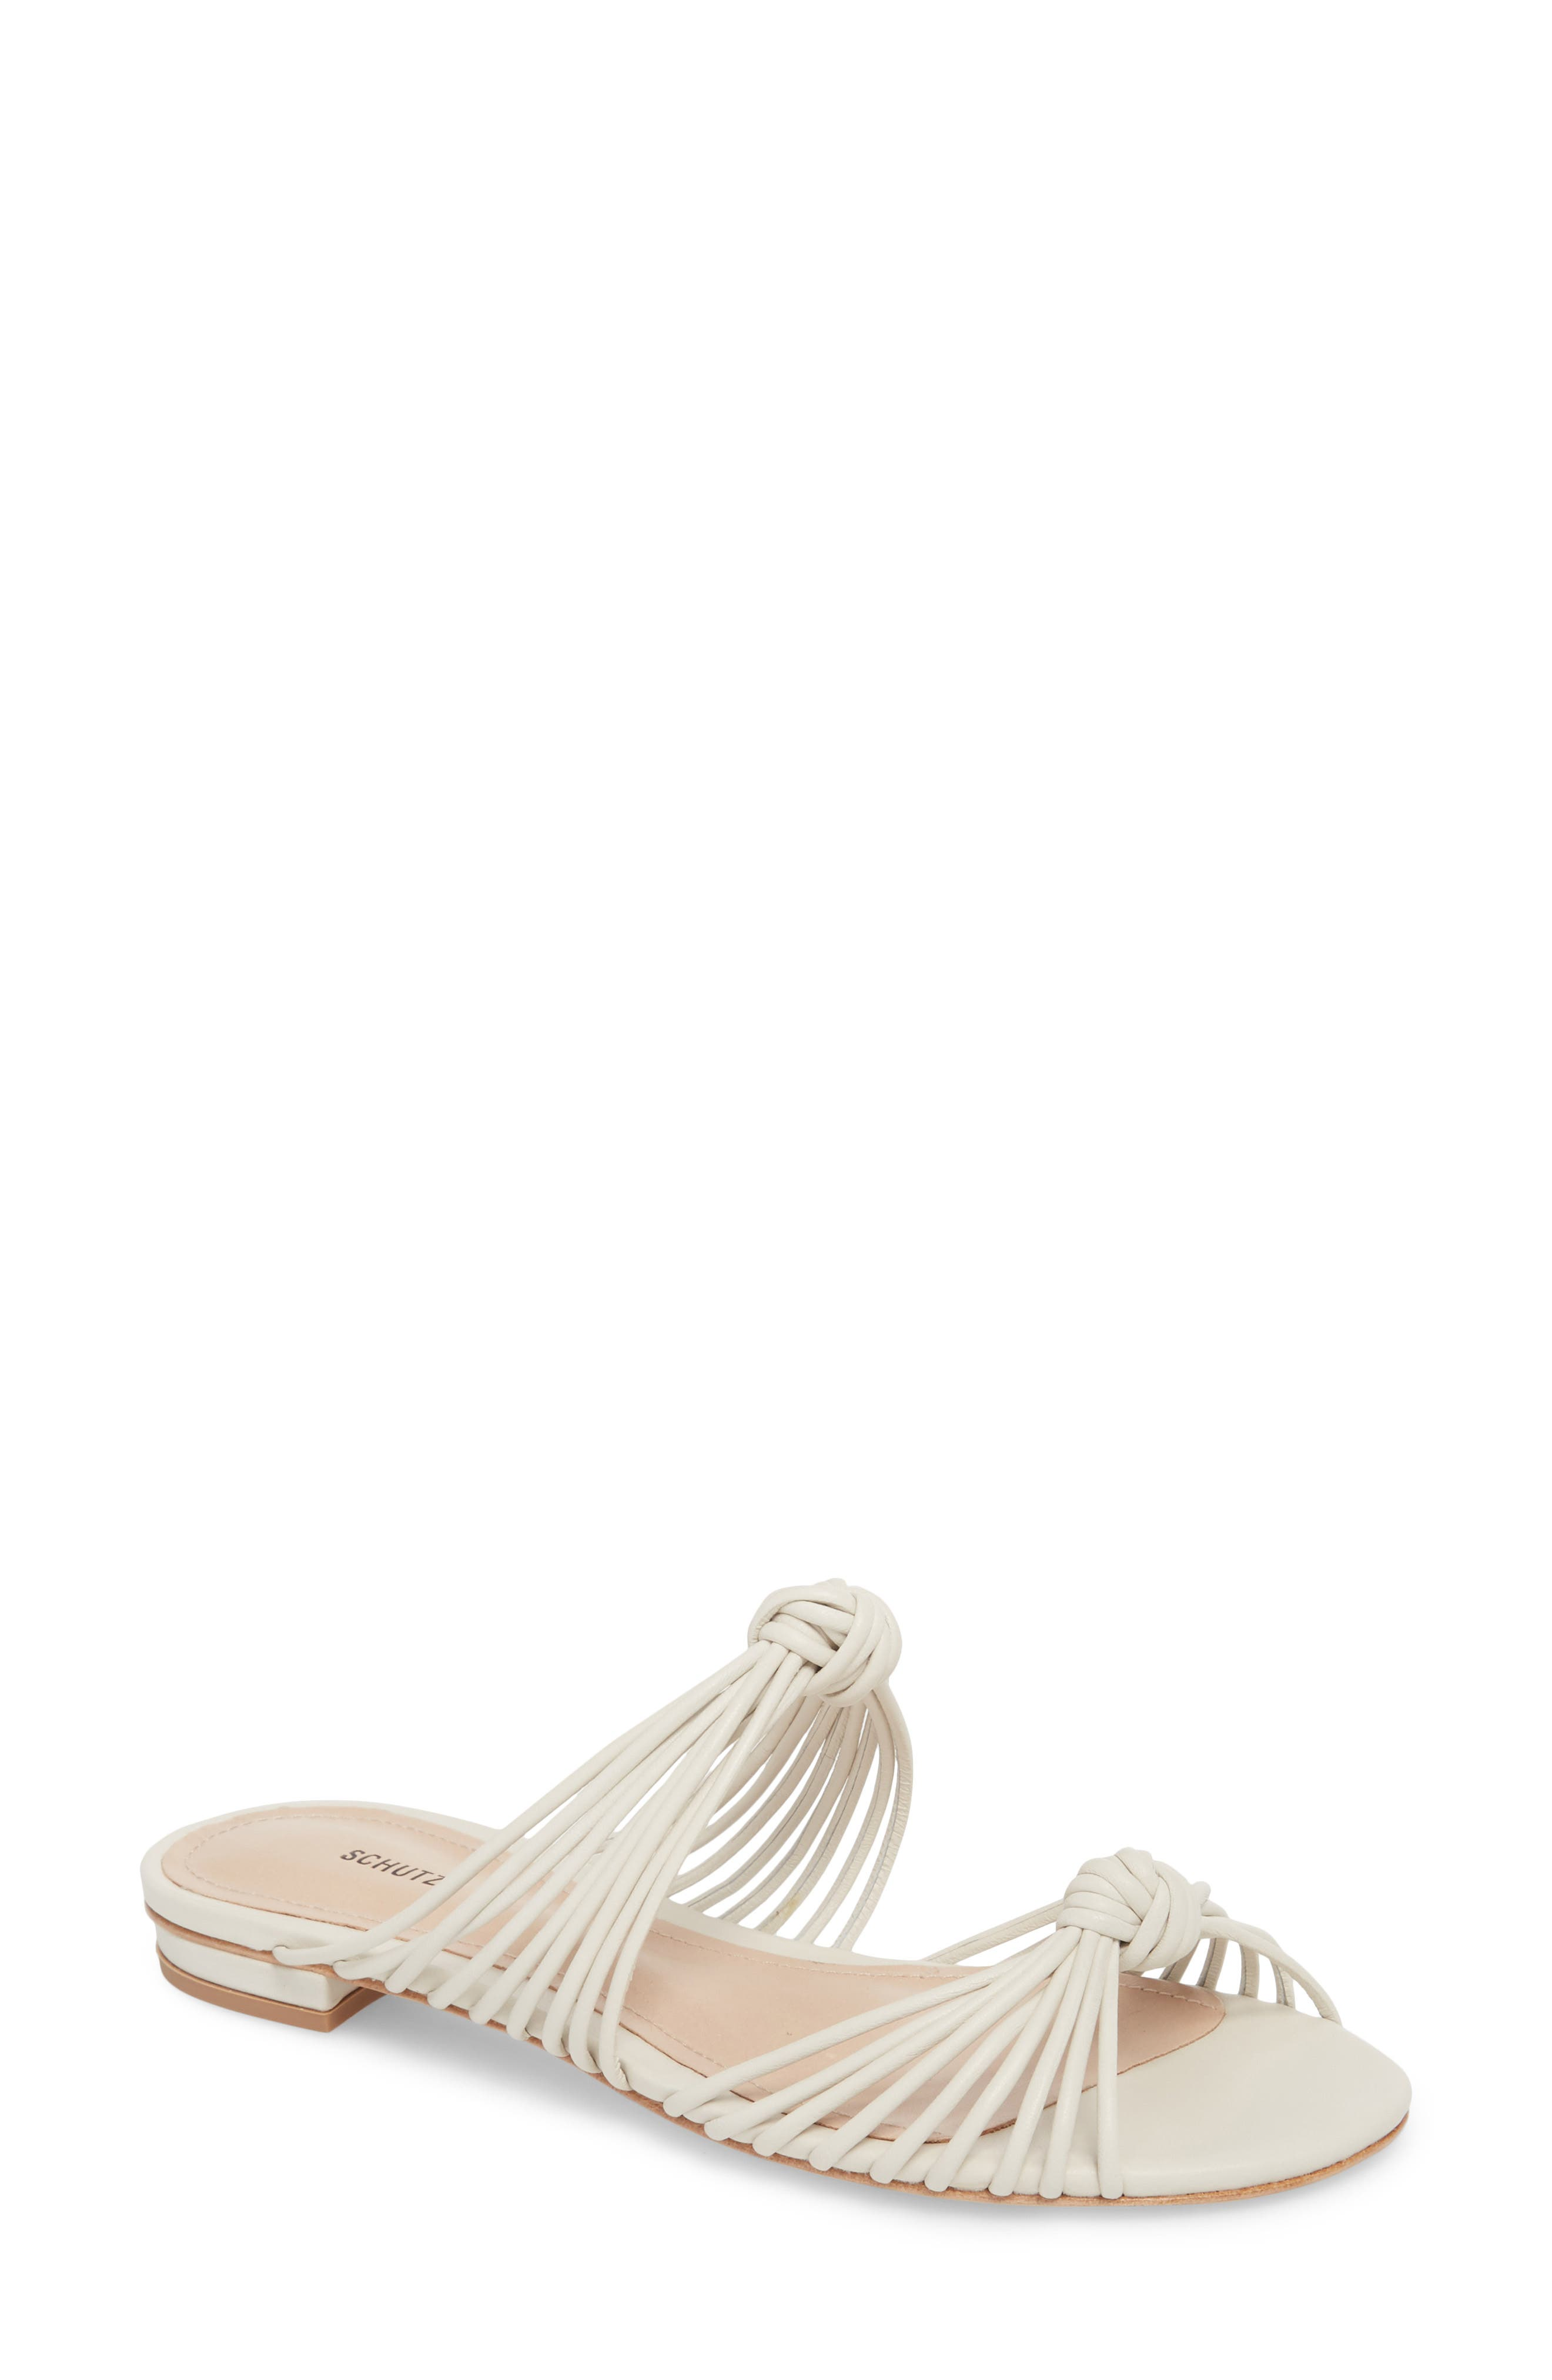 Nitiely Slide Sandal,                         Main,                         color, Pearl Fabric